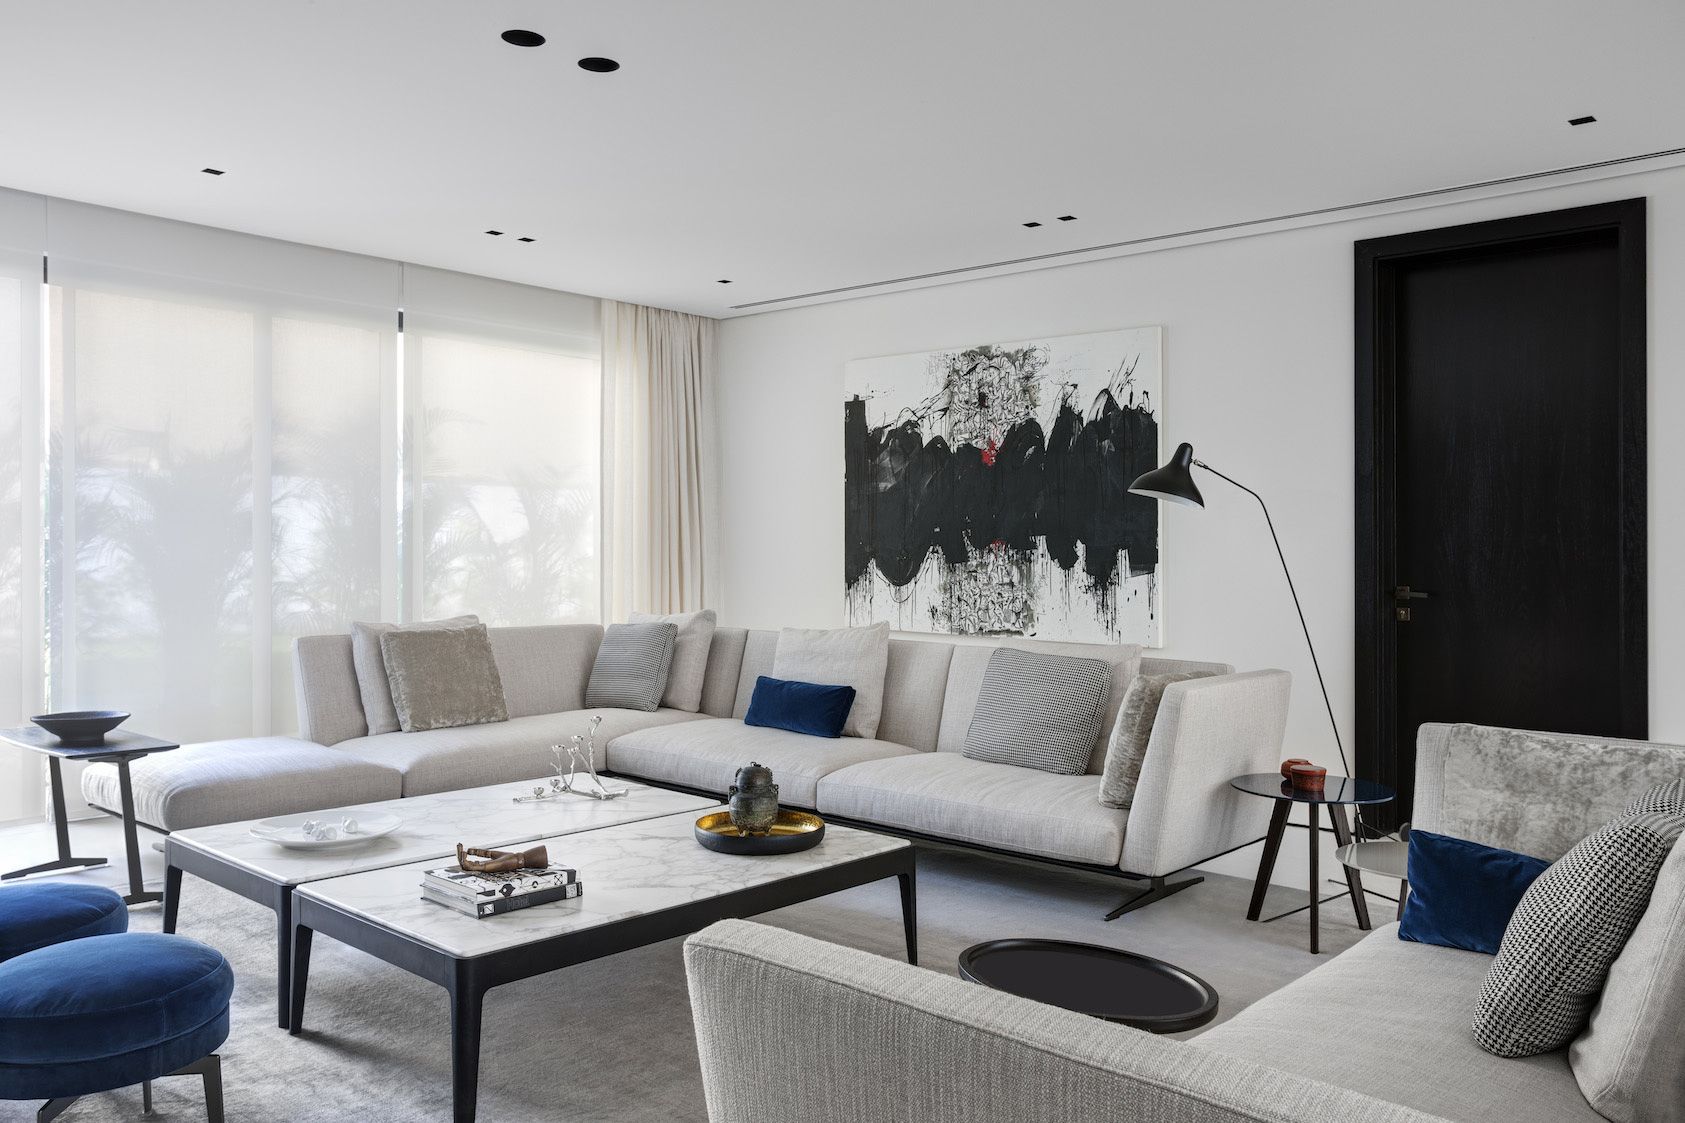 The Jumeirah Residence Shines with Mid-Century Floor Lamps